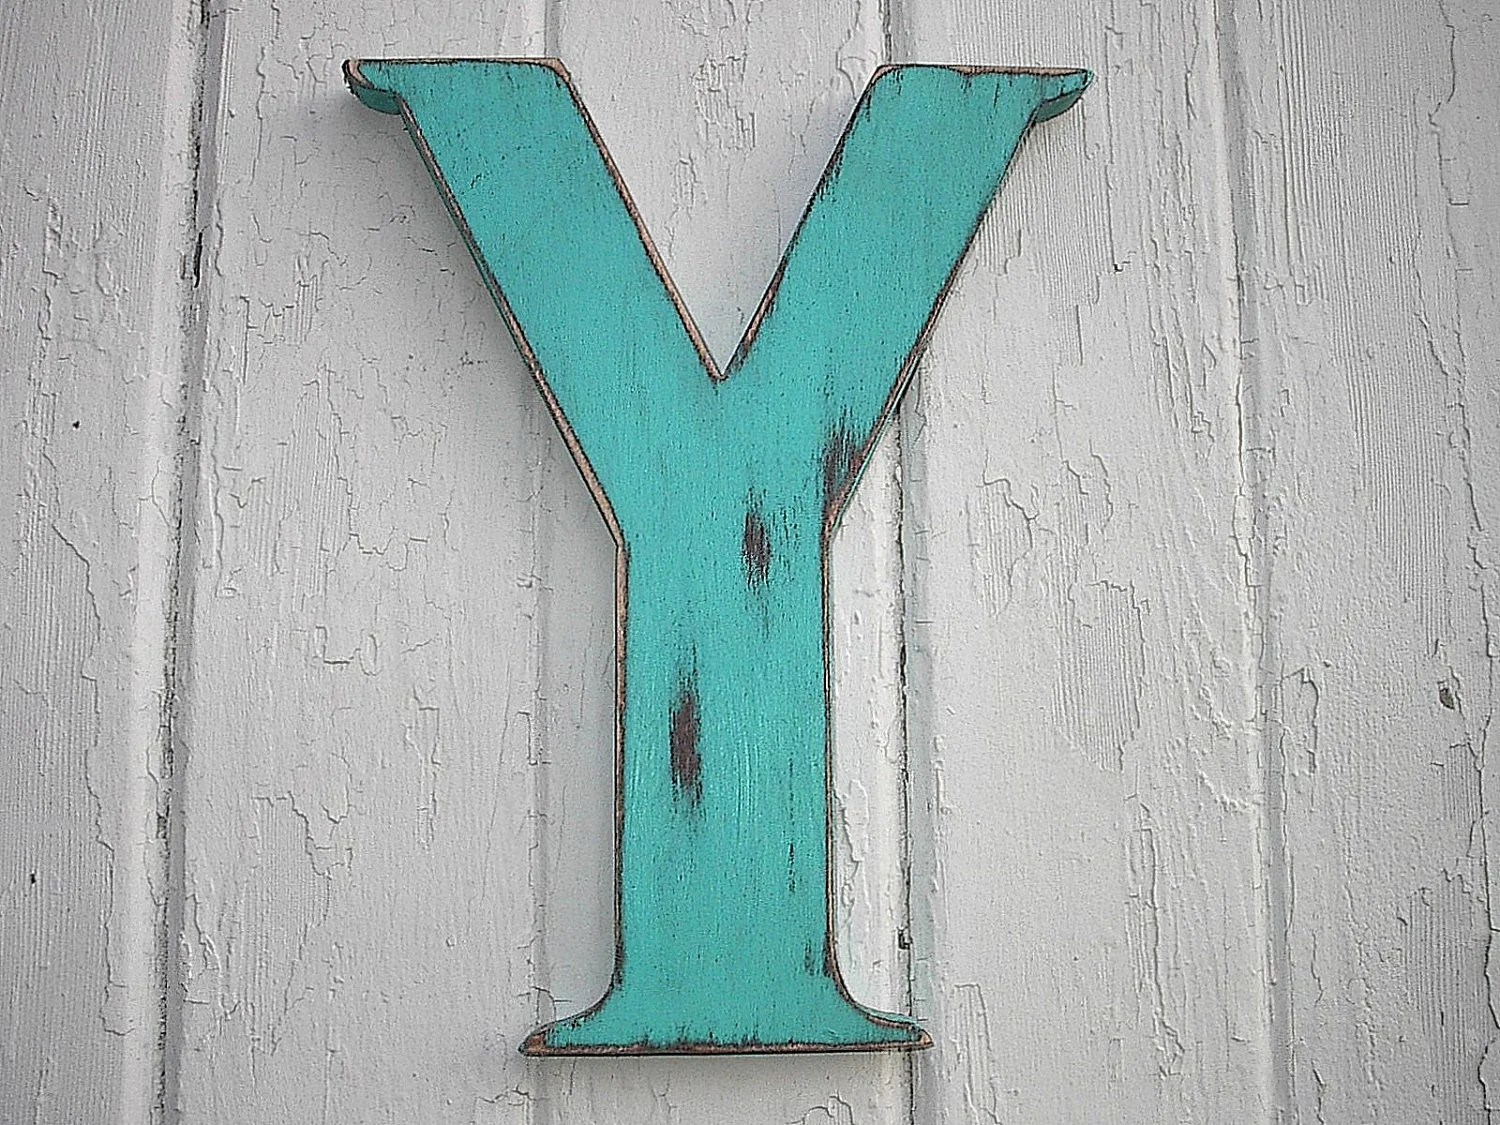 Rustic Wood Letter Bi 12 Inch Letter Y Initial Alphabet